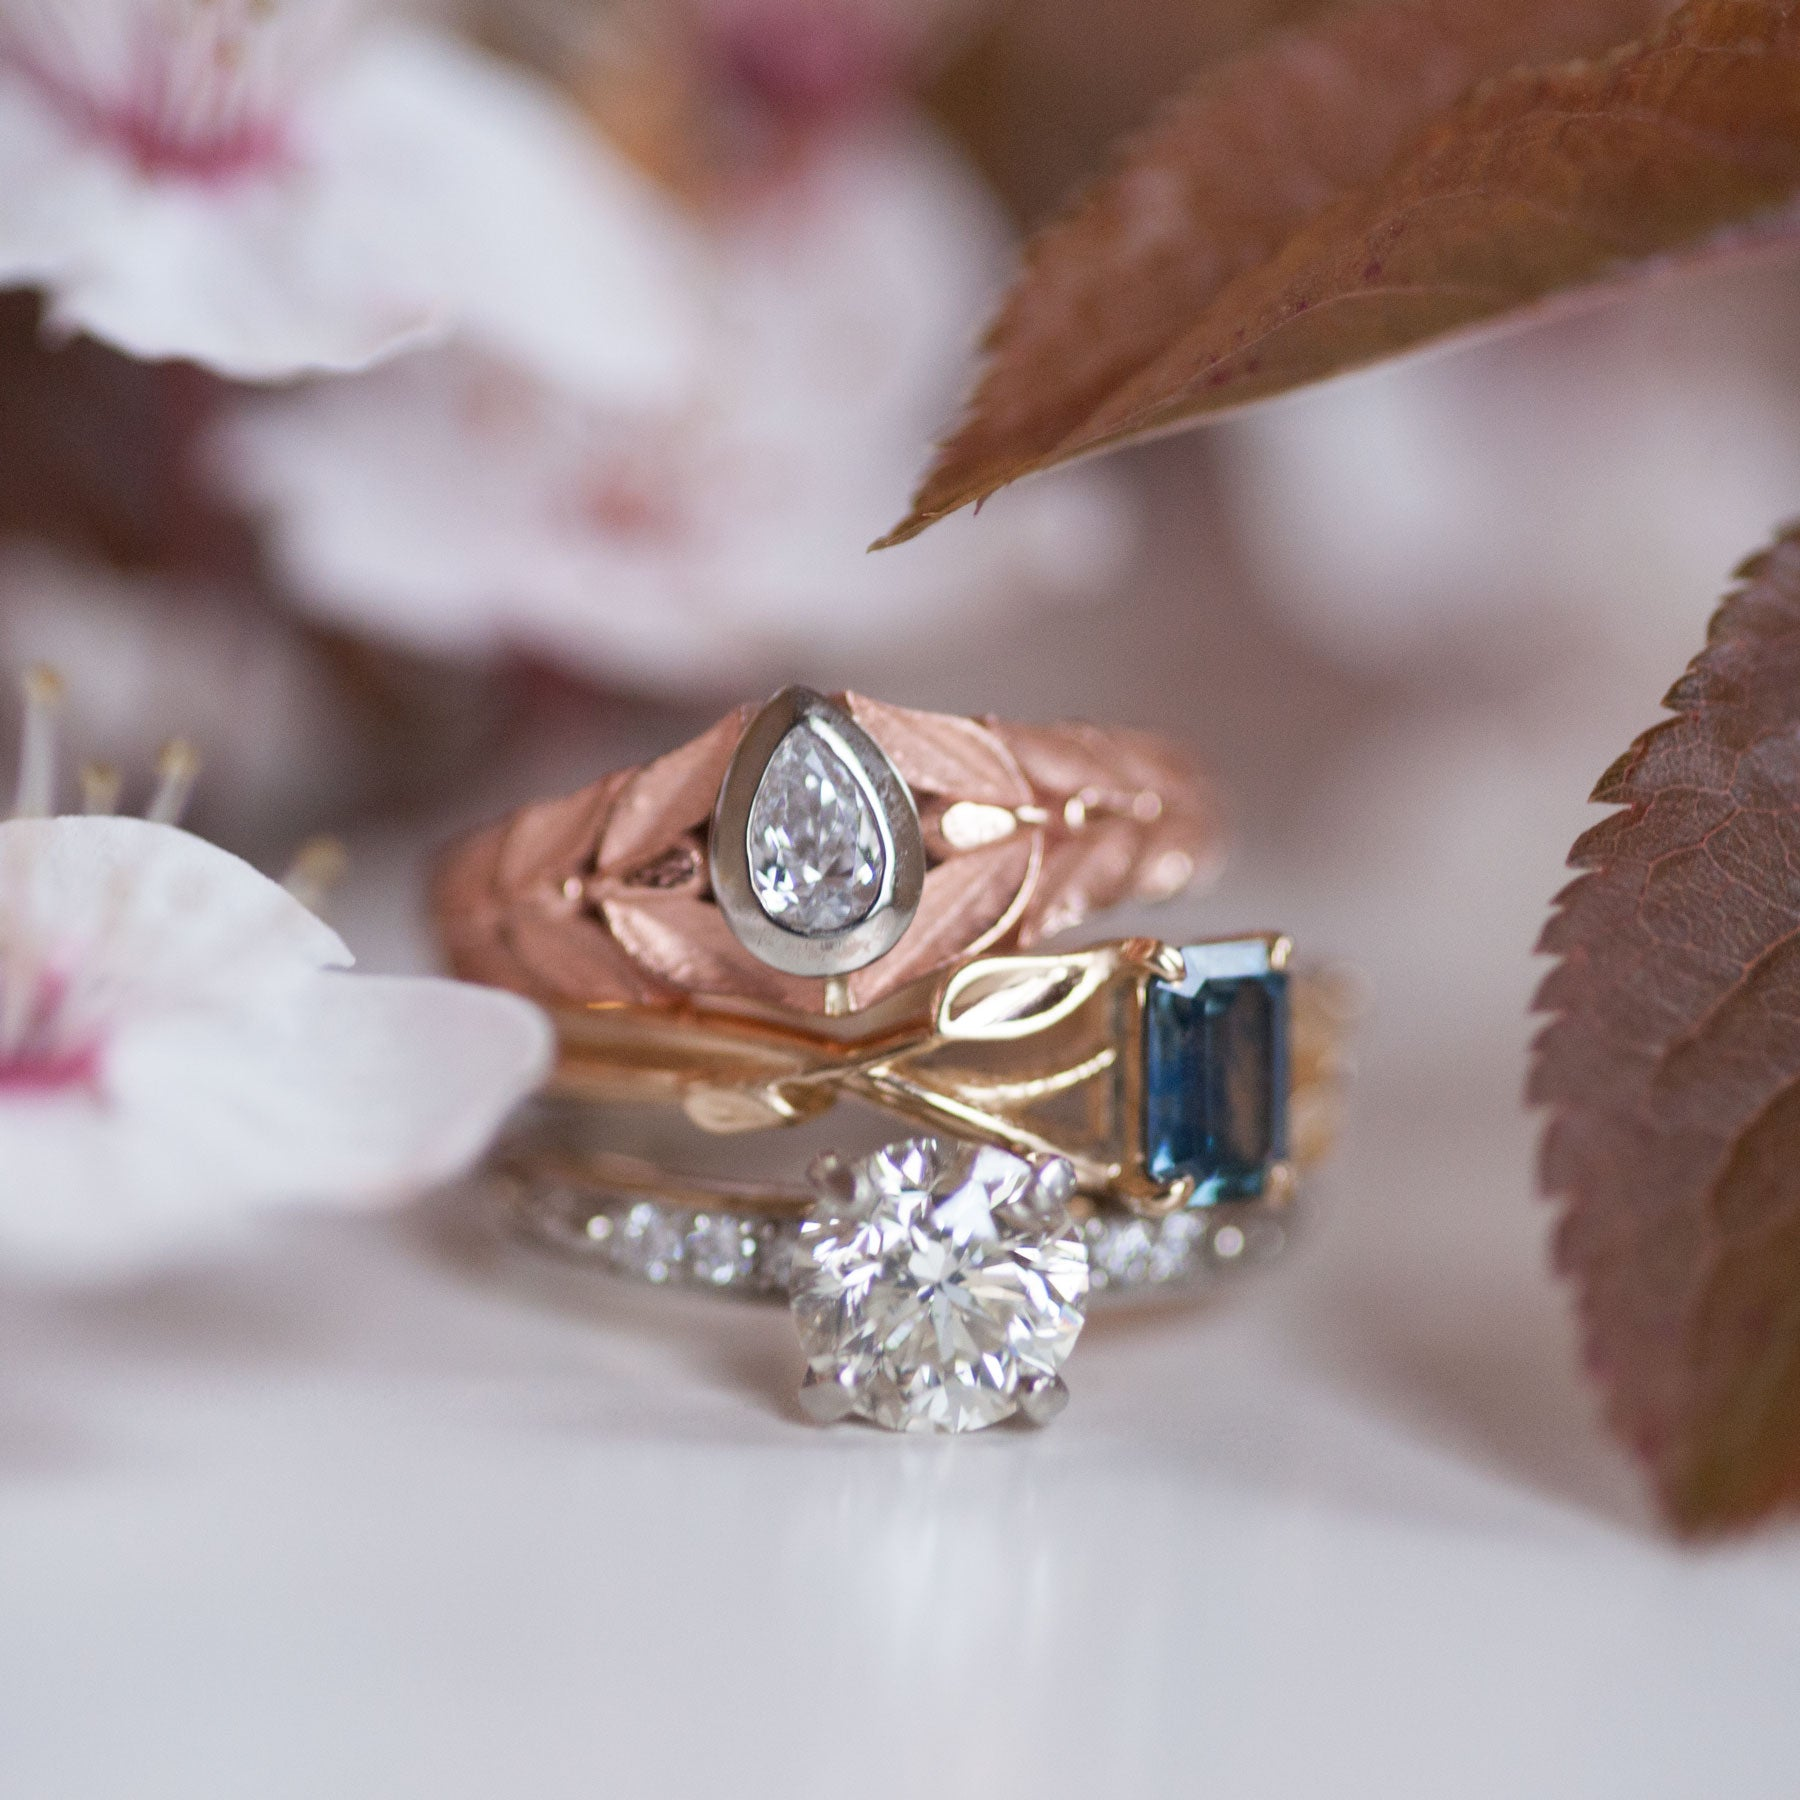 handmade exotic year in ring images the rings unique on pinterest best wedding engagement new